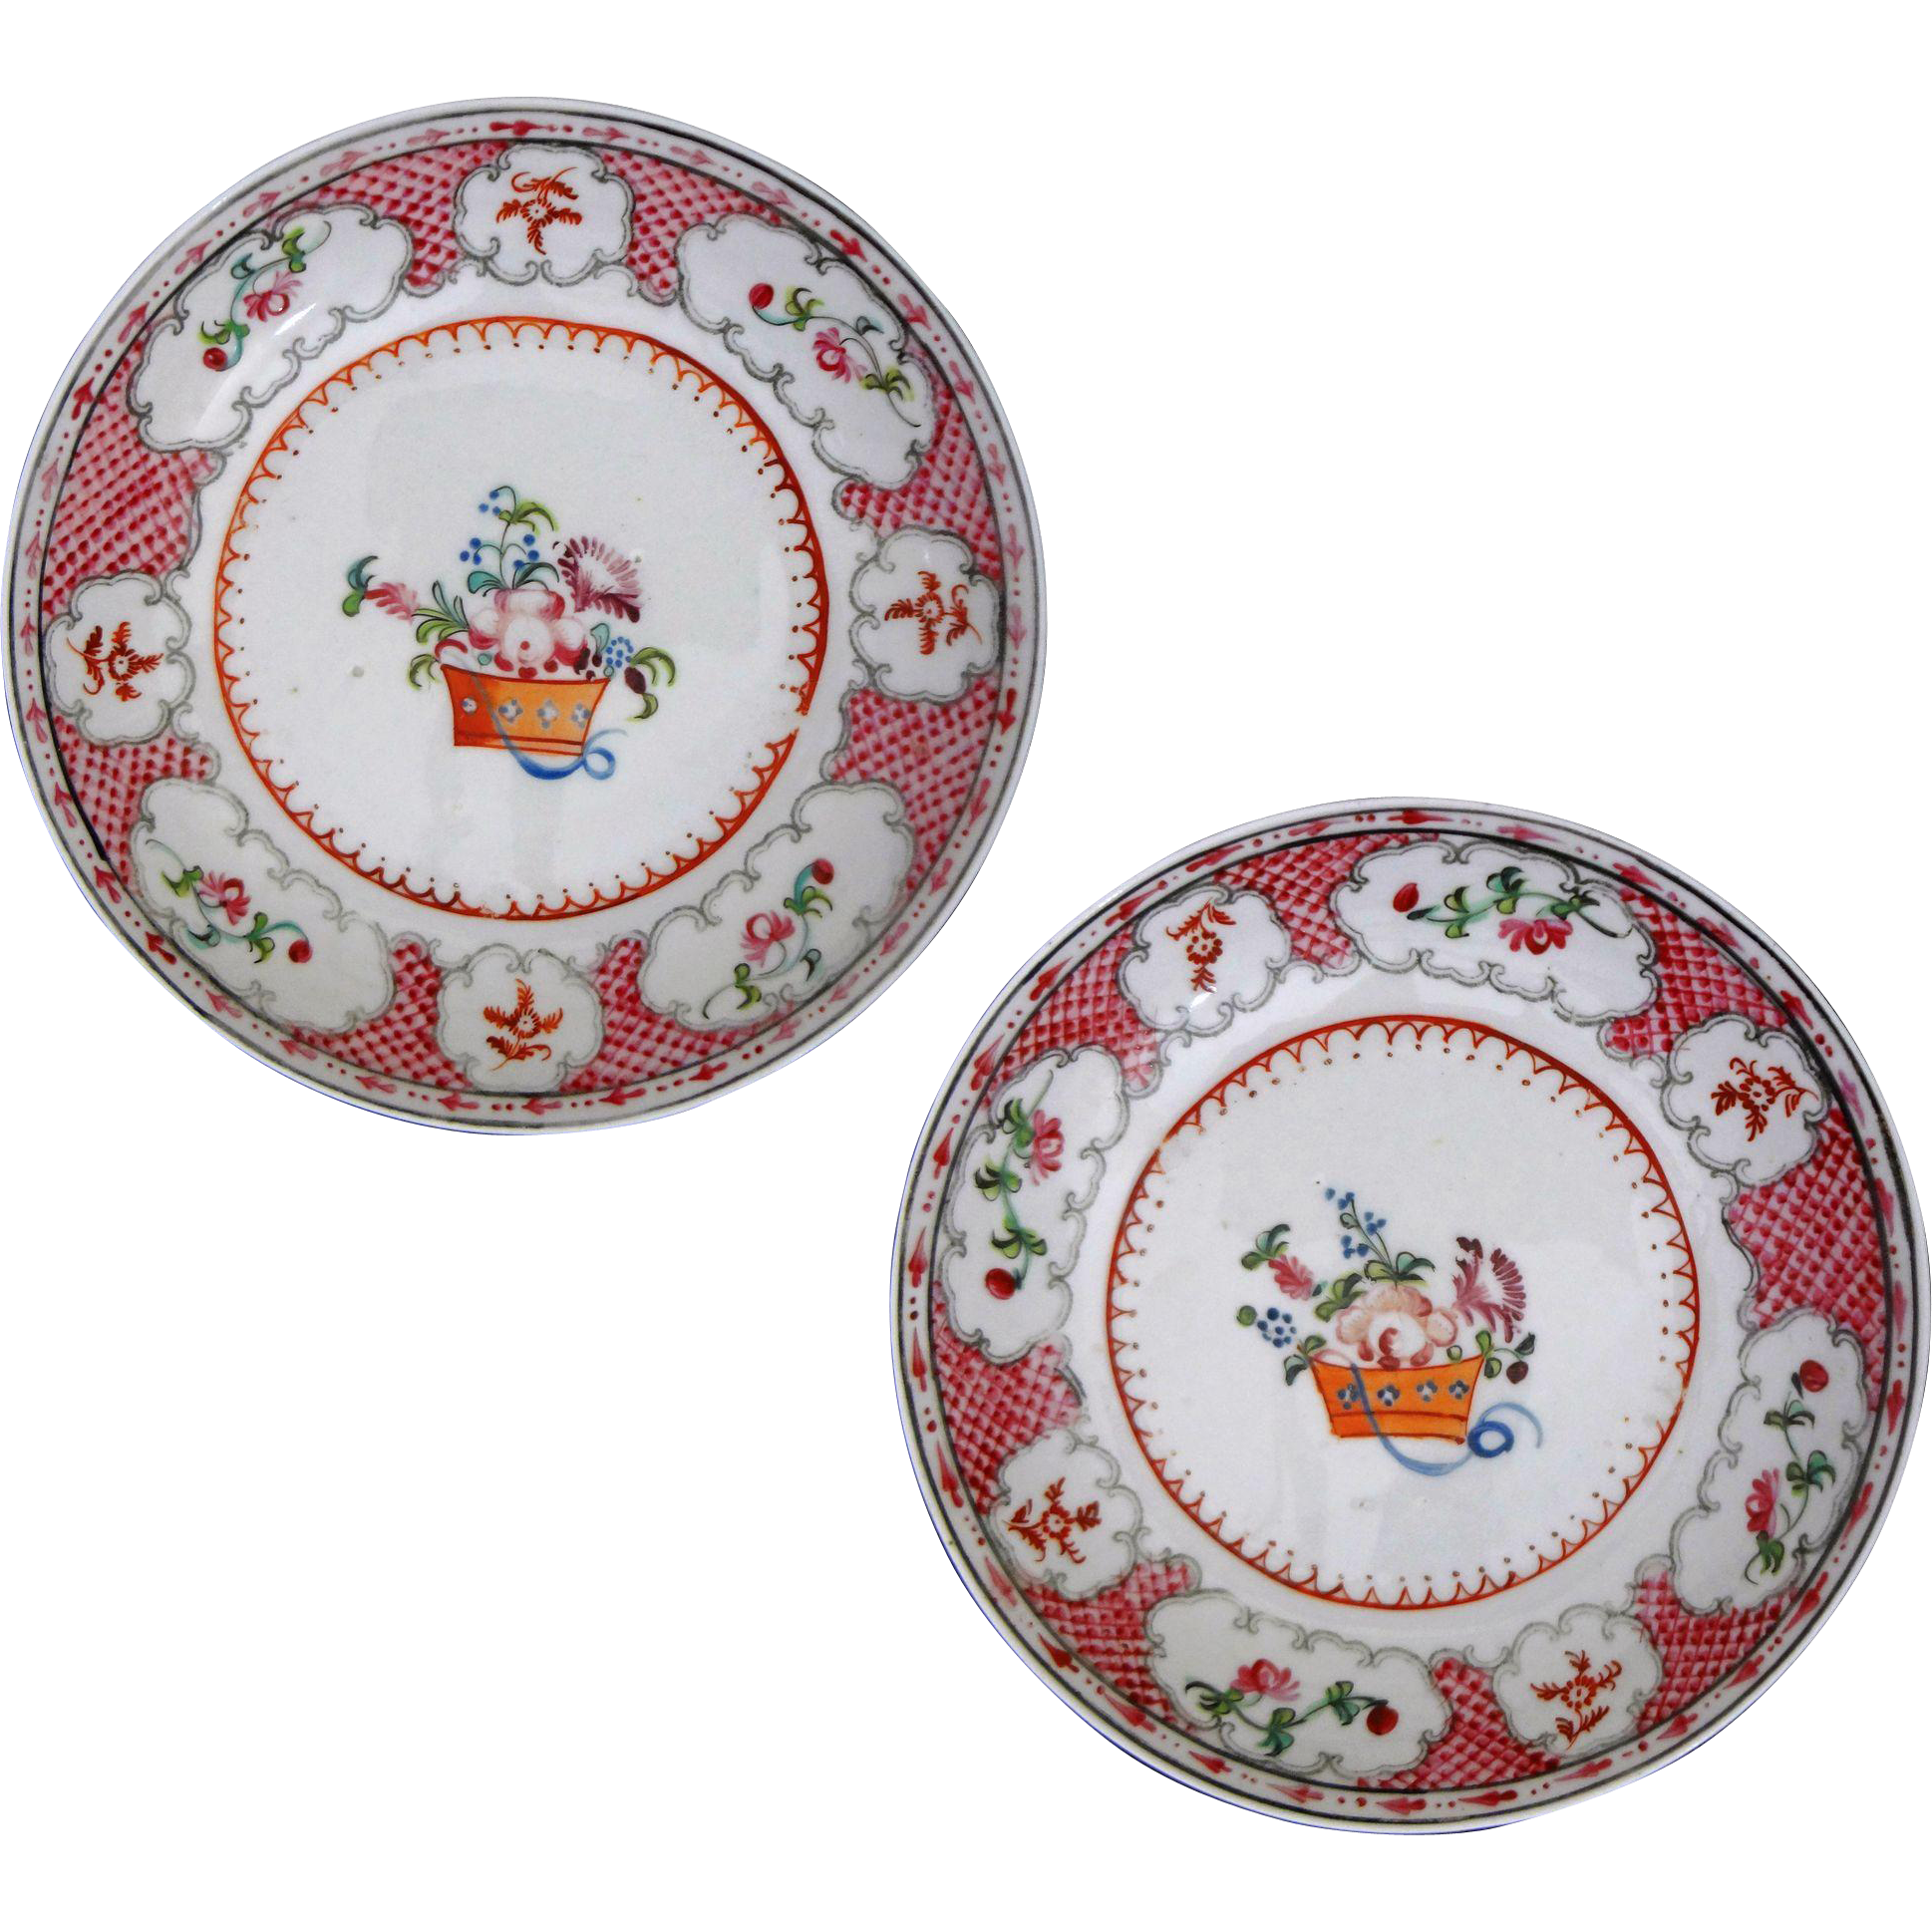 Pair of New Hall Lowestoft / Chinese Export Style Hard Paste Enameled Porcelain Tea Bowls / Plates - ca. 1800, England